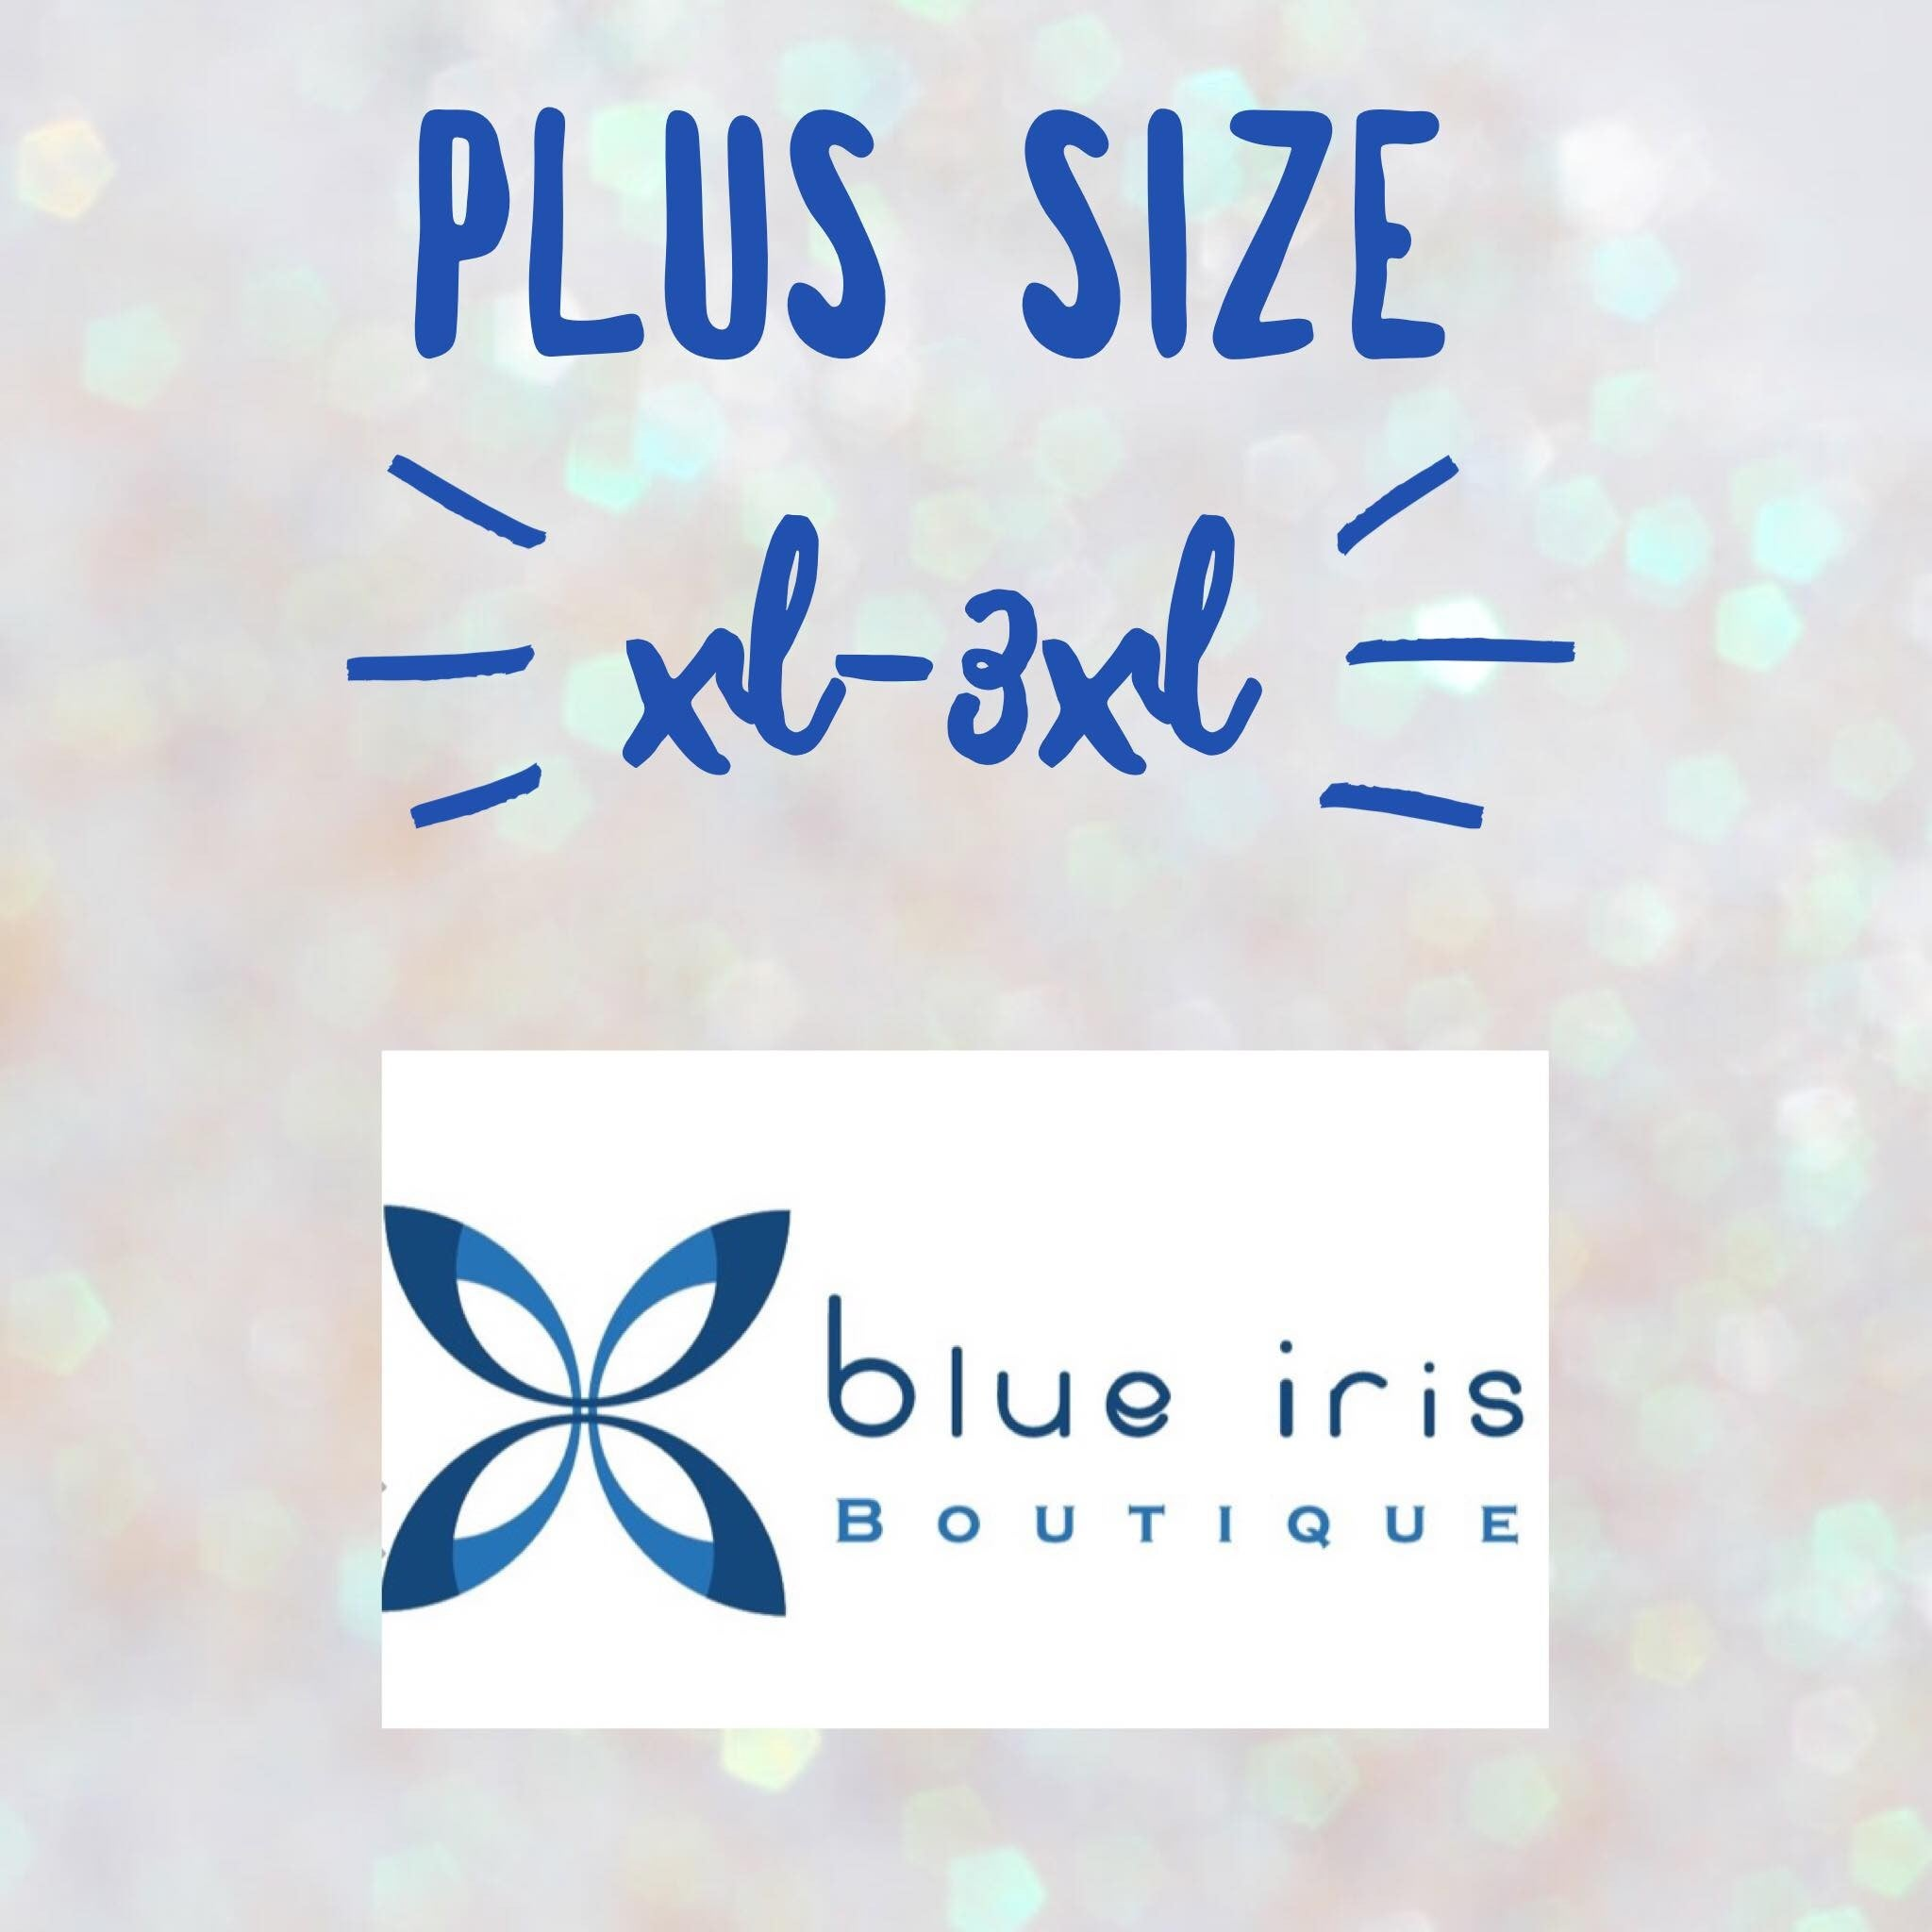 Plus size XL-3XL